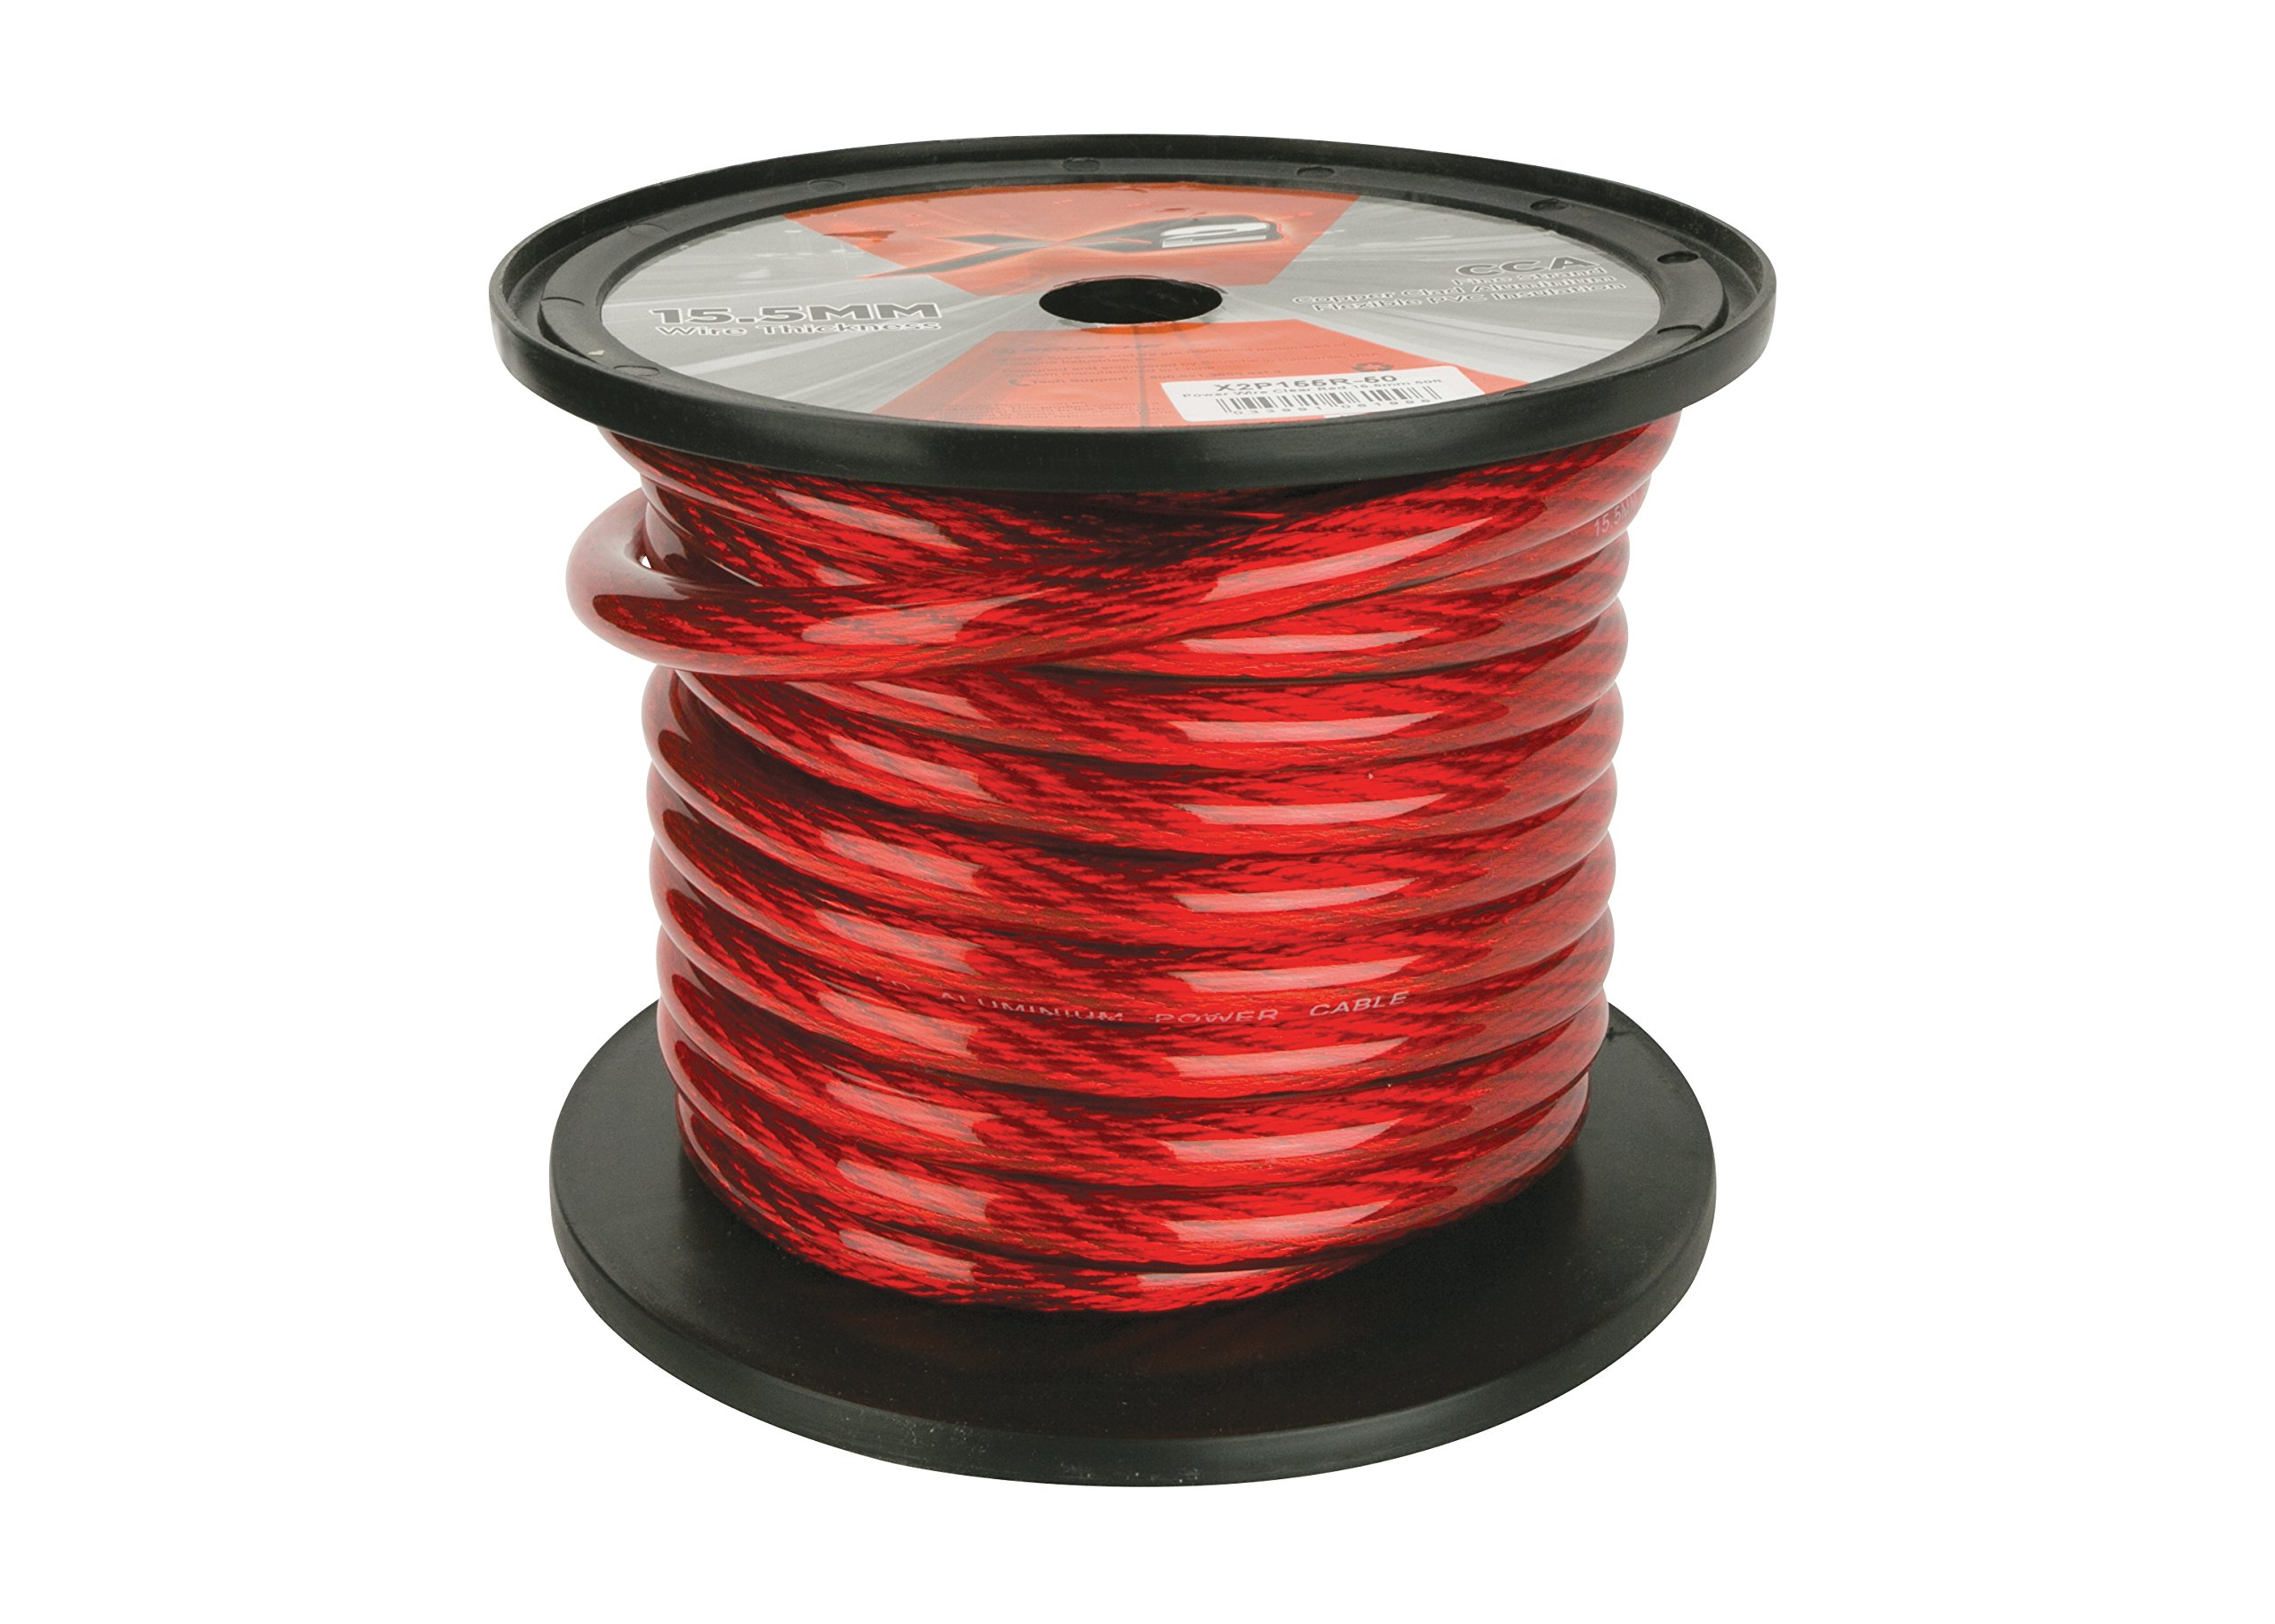 Scosche X2P155R-50 Power Wire Red 15.5mm 50ft